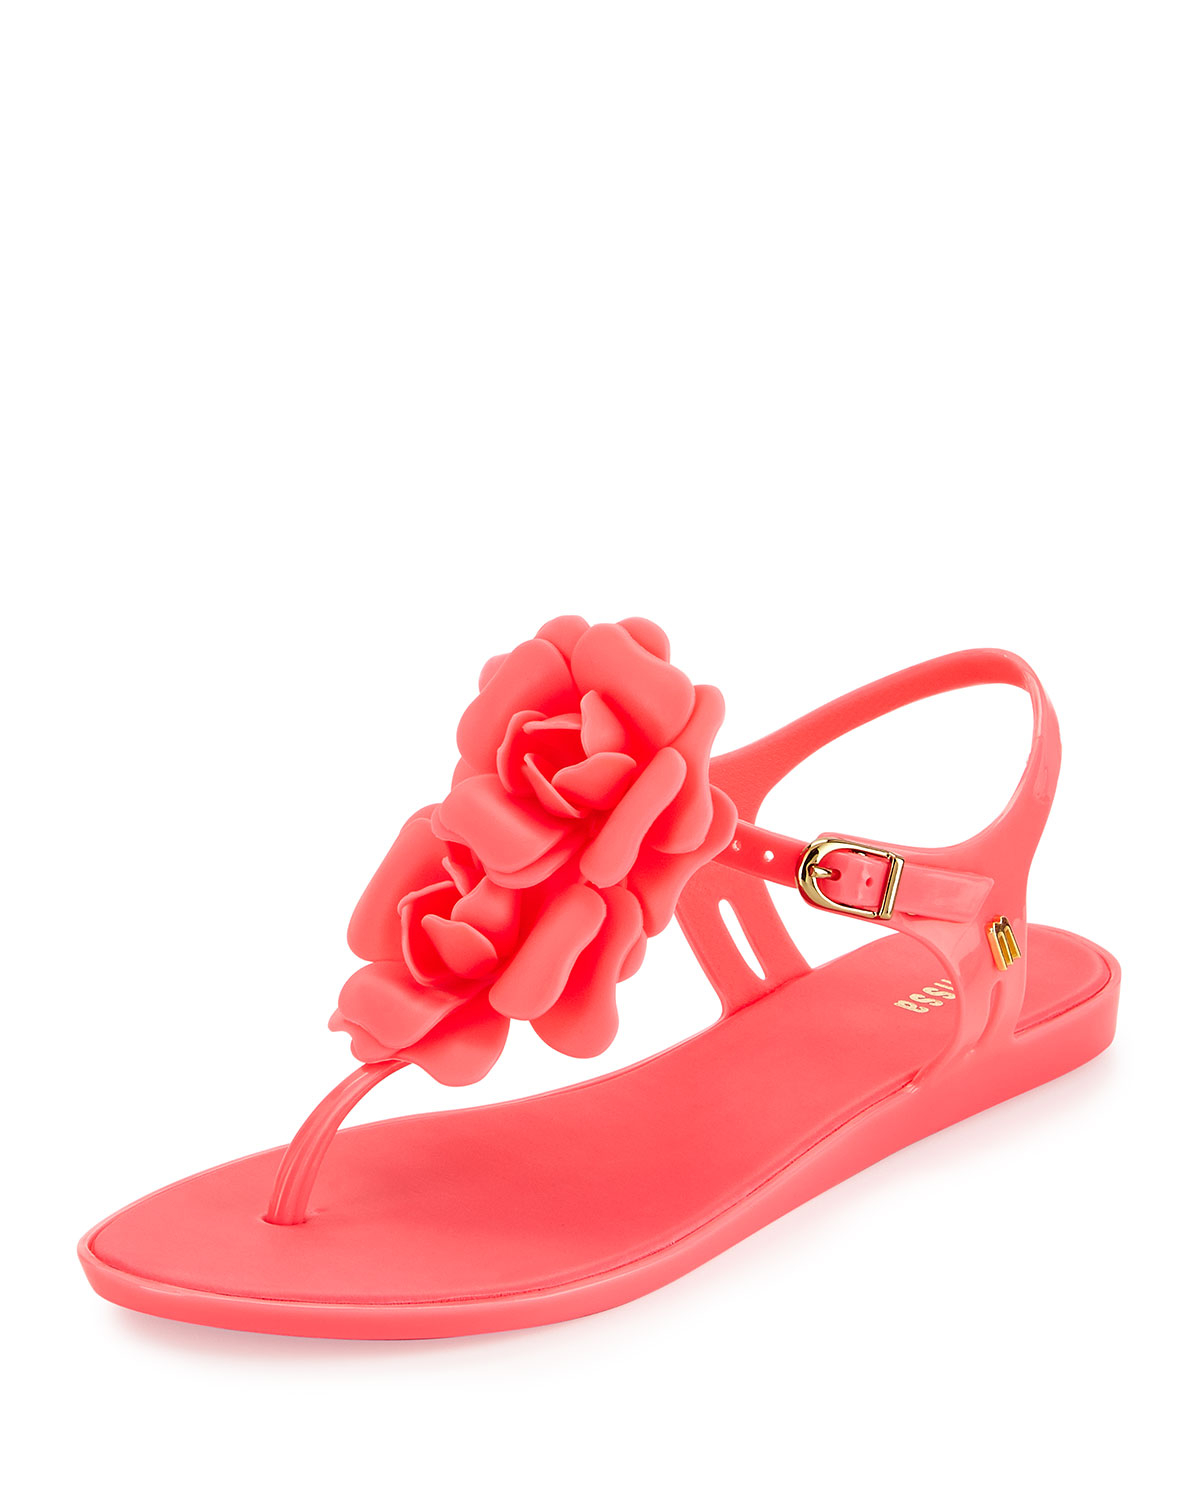 6c5b8a8647ae26 ... Lyst - Melissa Solar Garden Thong Sandal in Pink best shoes 62257 7a198  ...